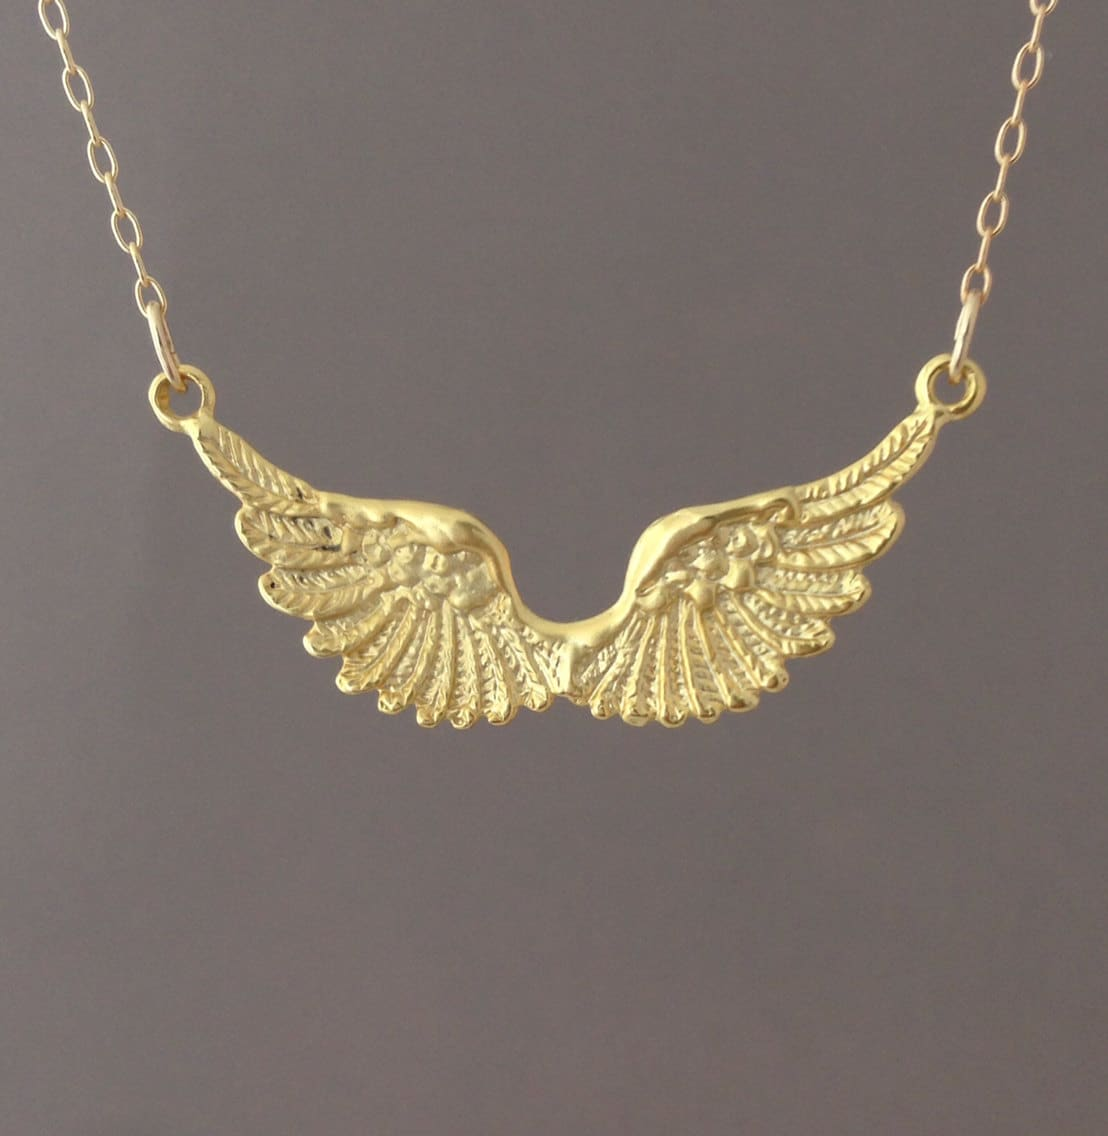 jewelry angel gold shipping necklace white watches overstock product tdw diamond today free wing